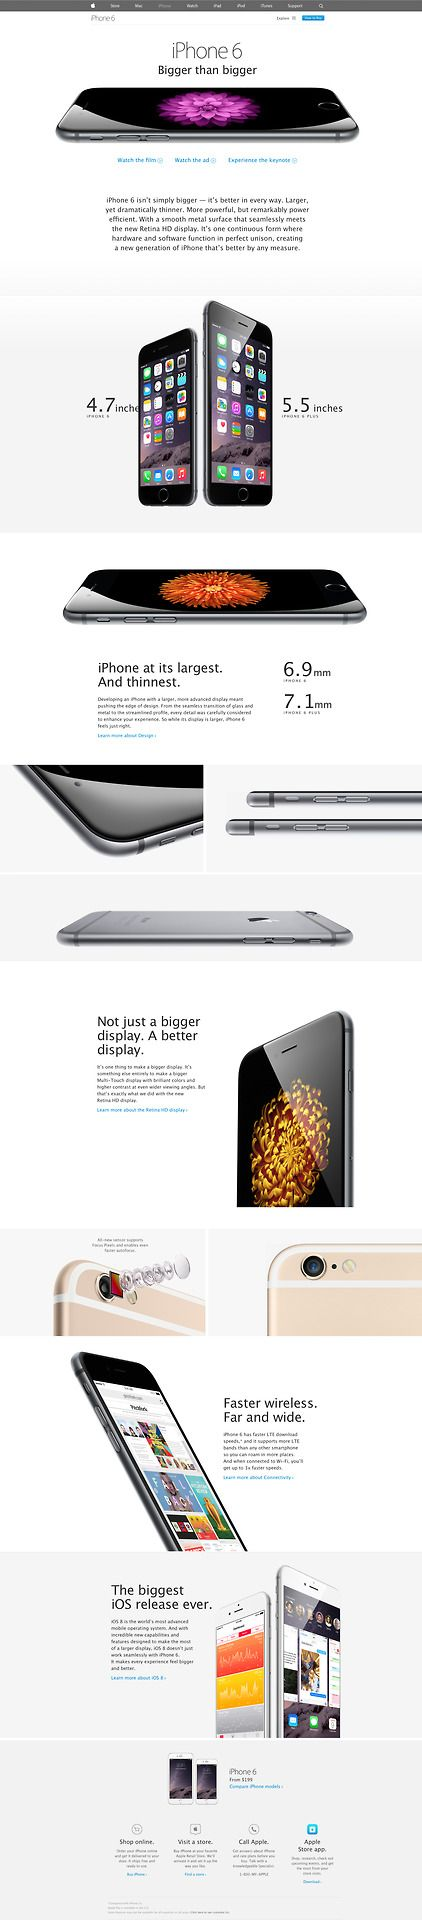 Unique Web Design, iPhone 6 #WebDesign #Design (http://www.pinterest.com/aldenchong/)